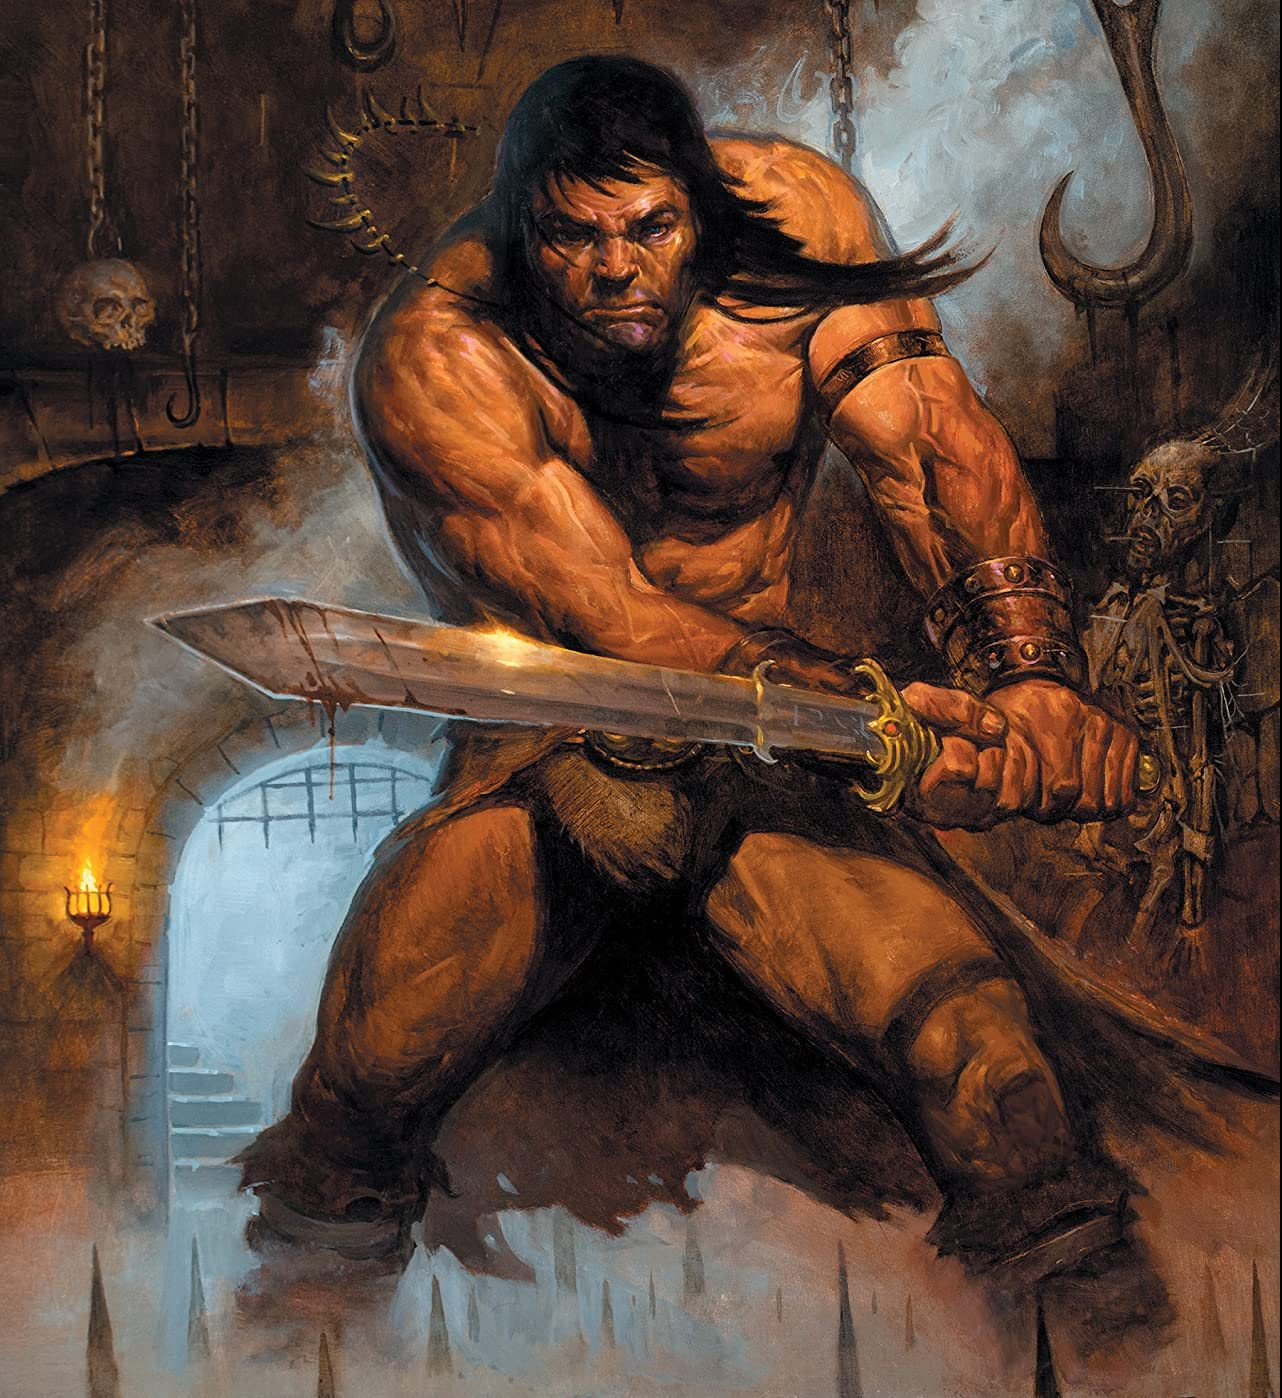 'Conan the Barbarian Vol. 1: Into the Crucible' review: The Cimmerian slays his demons